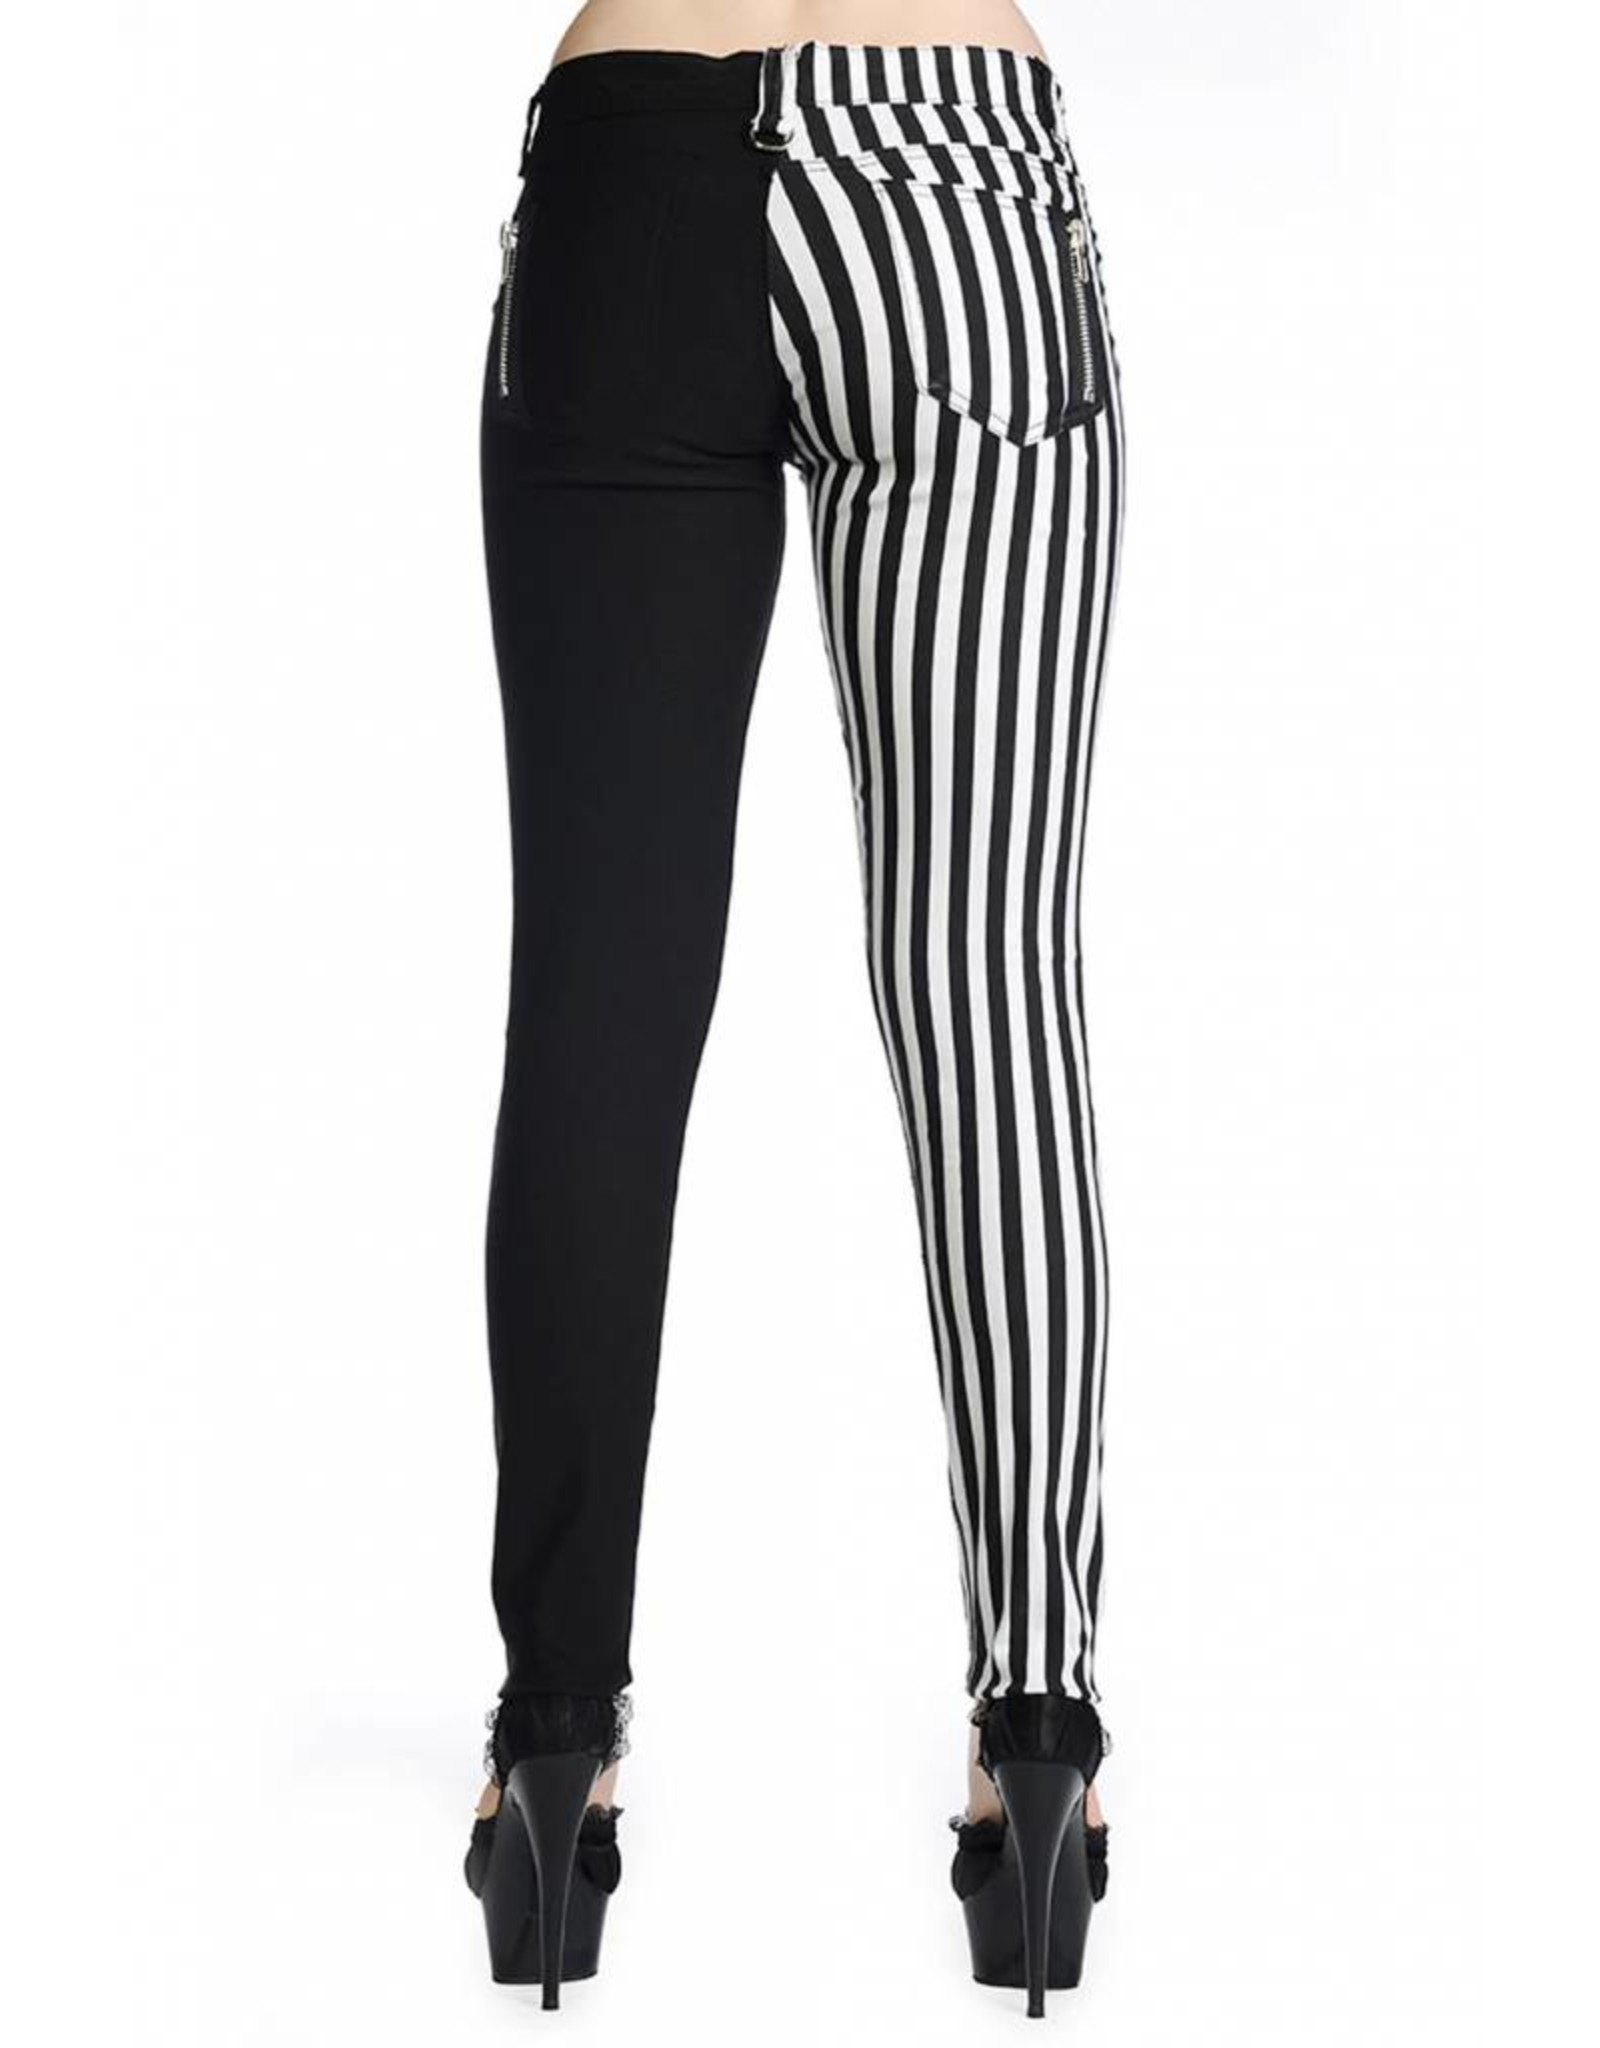 BANNED - Half Striped Black/White Pants